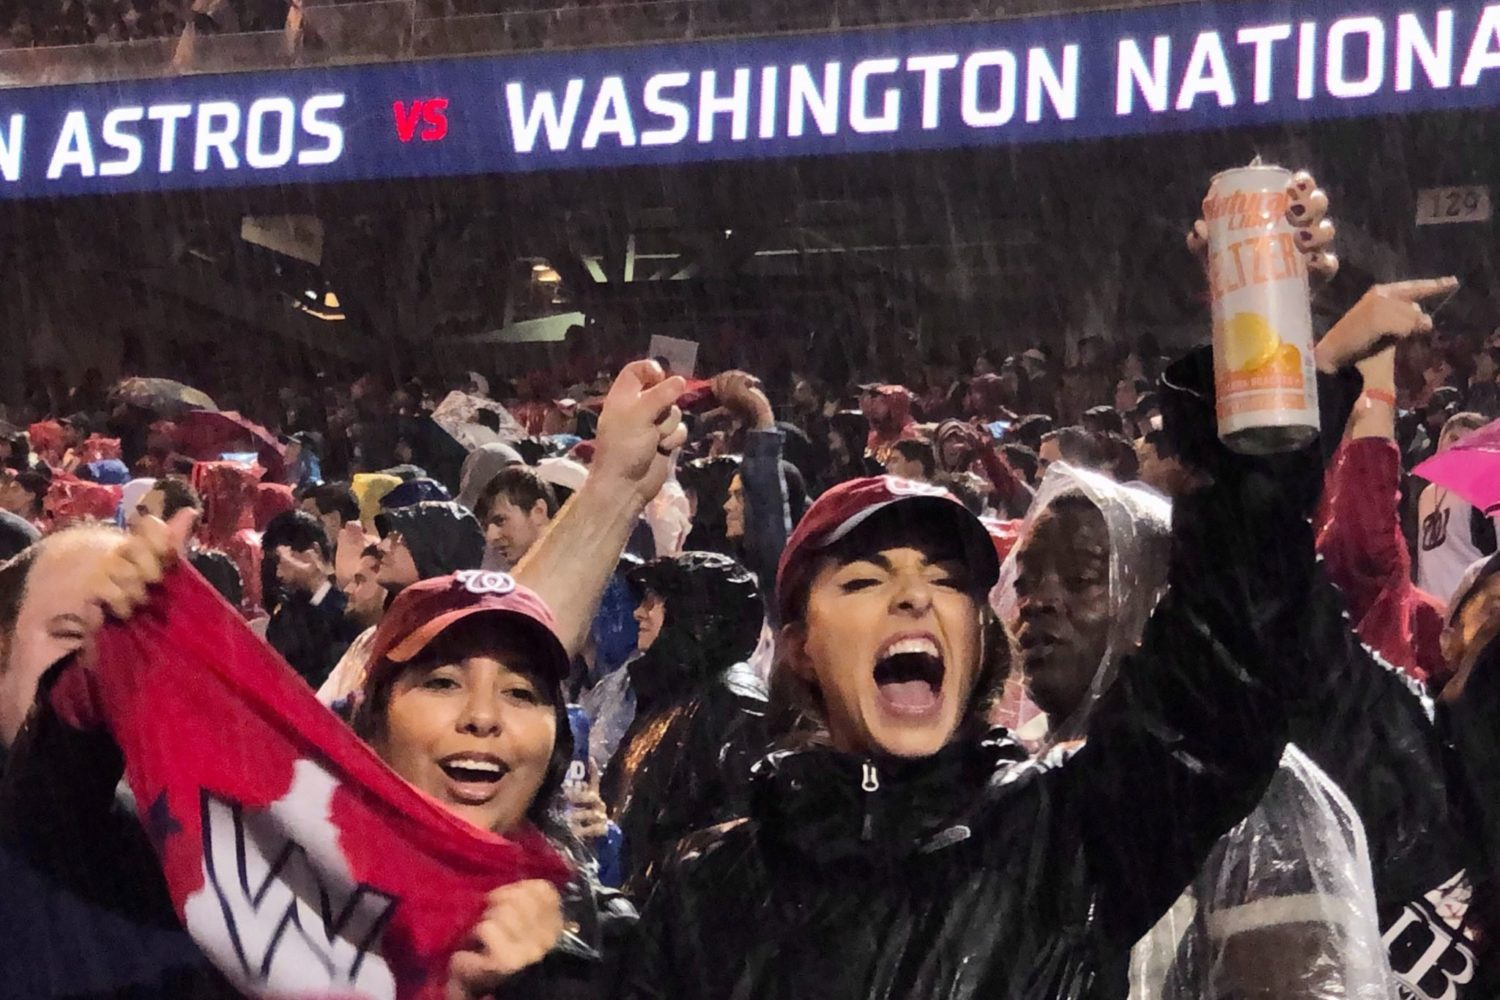 Nationals win world series